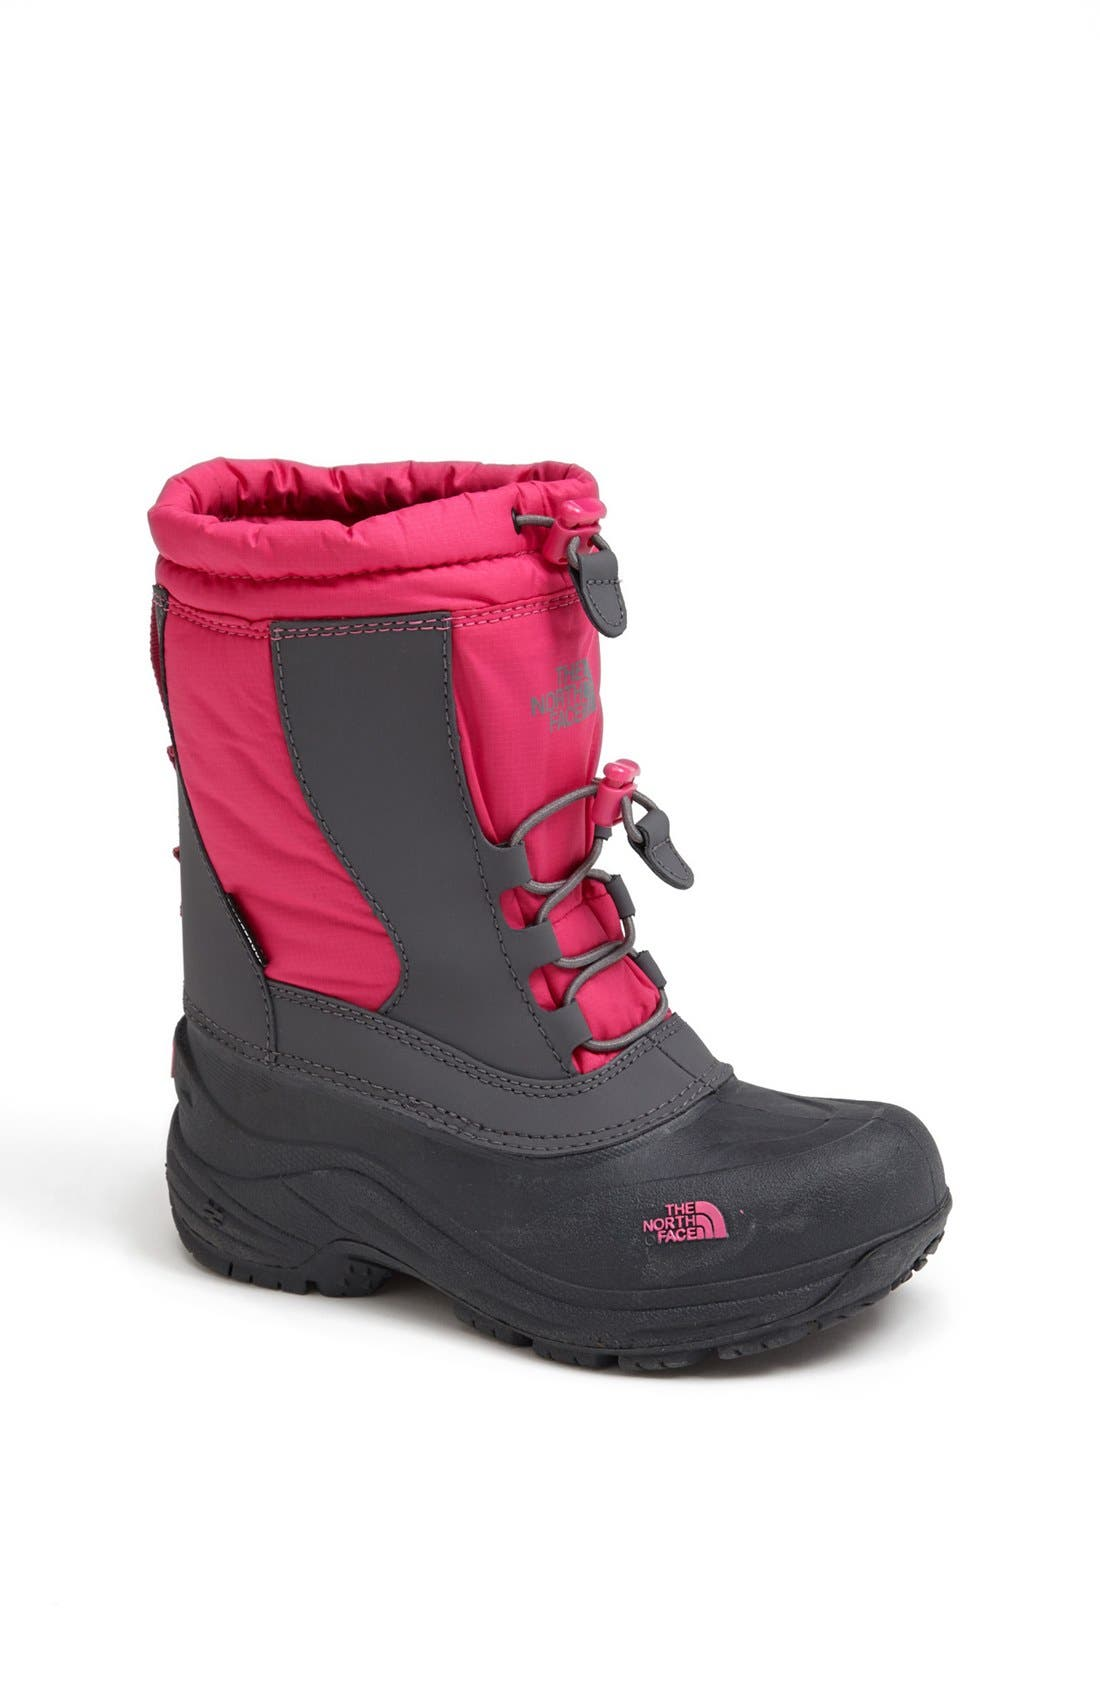 Main Image - The North Face 'Alpenglow' Boot (Toddler, Little Kid & Big Kid)